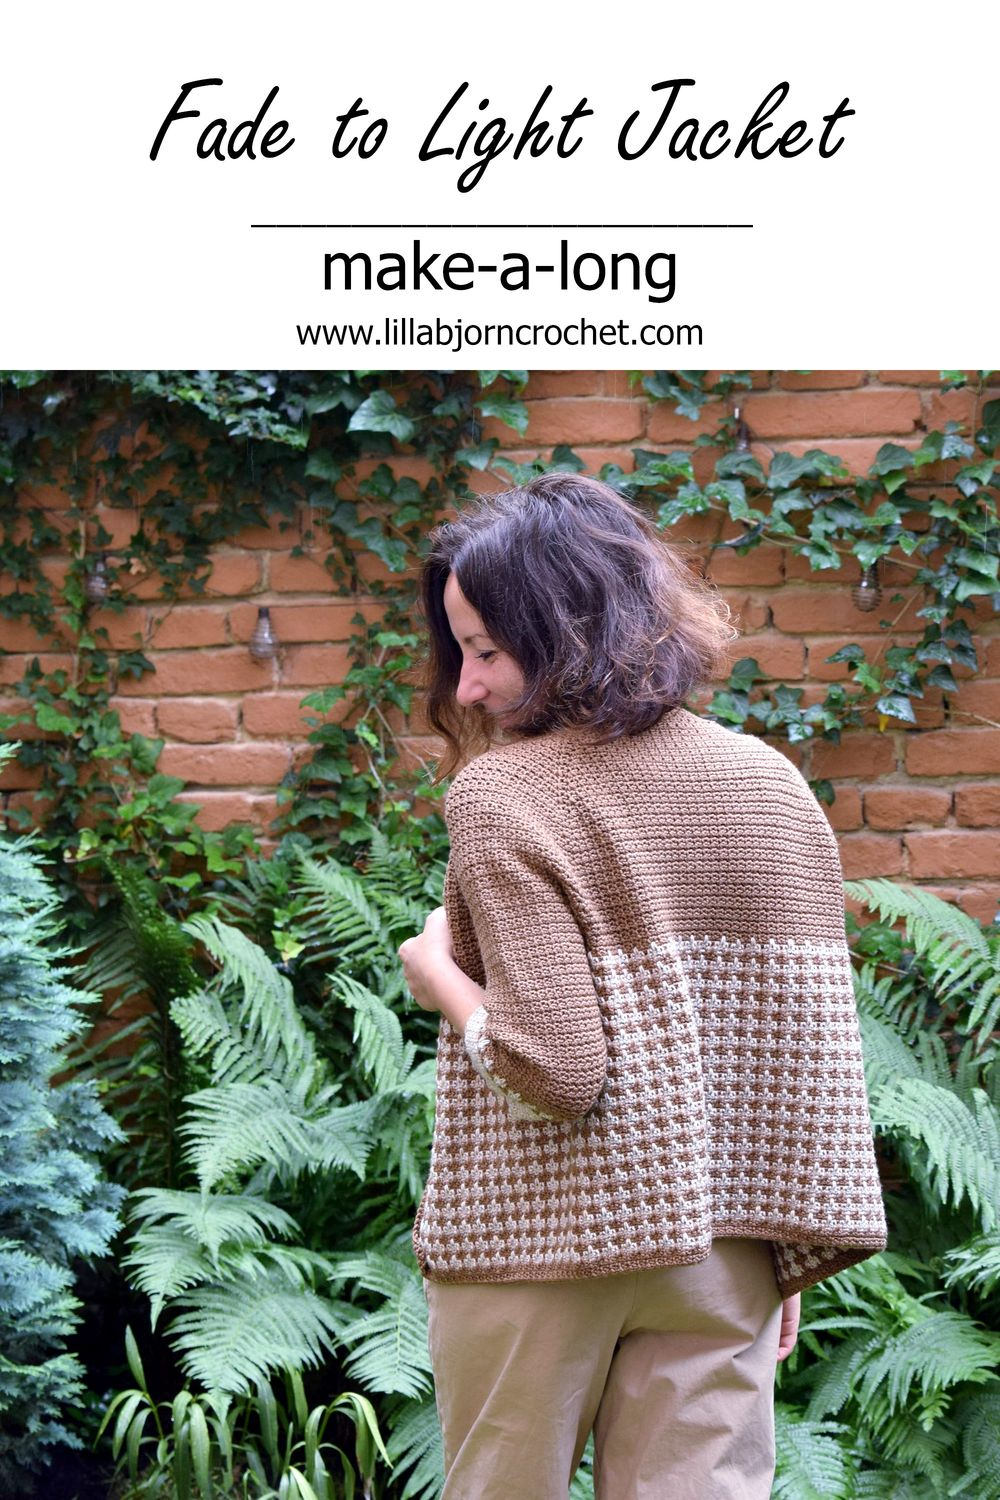 How to make a crochet garment